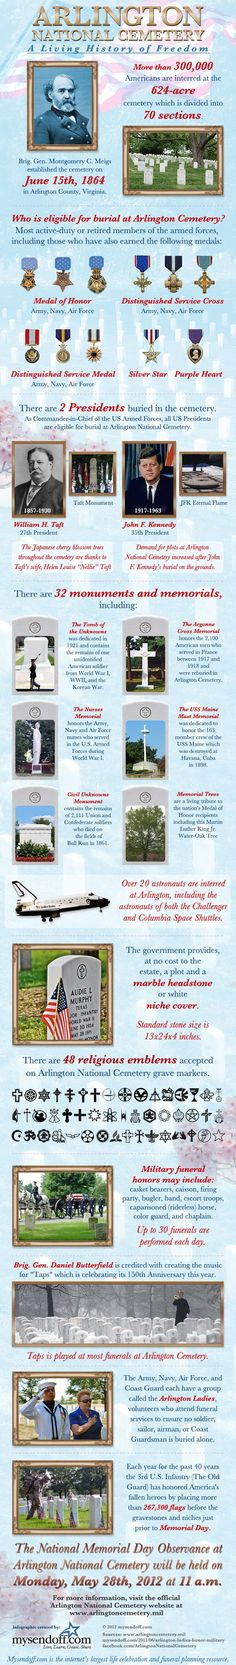 In honor of Memorial Day - Arlington Infographic